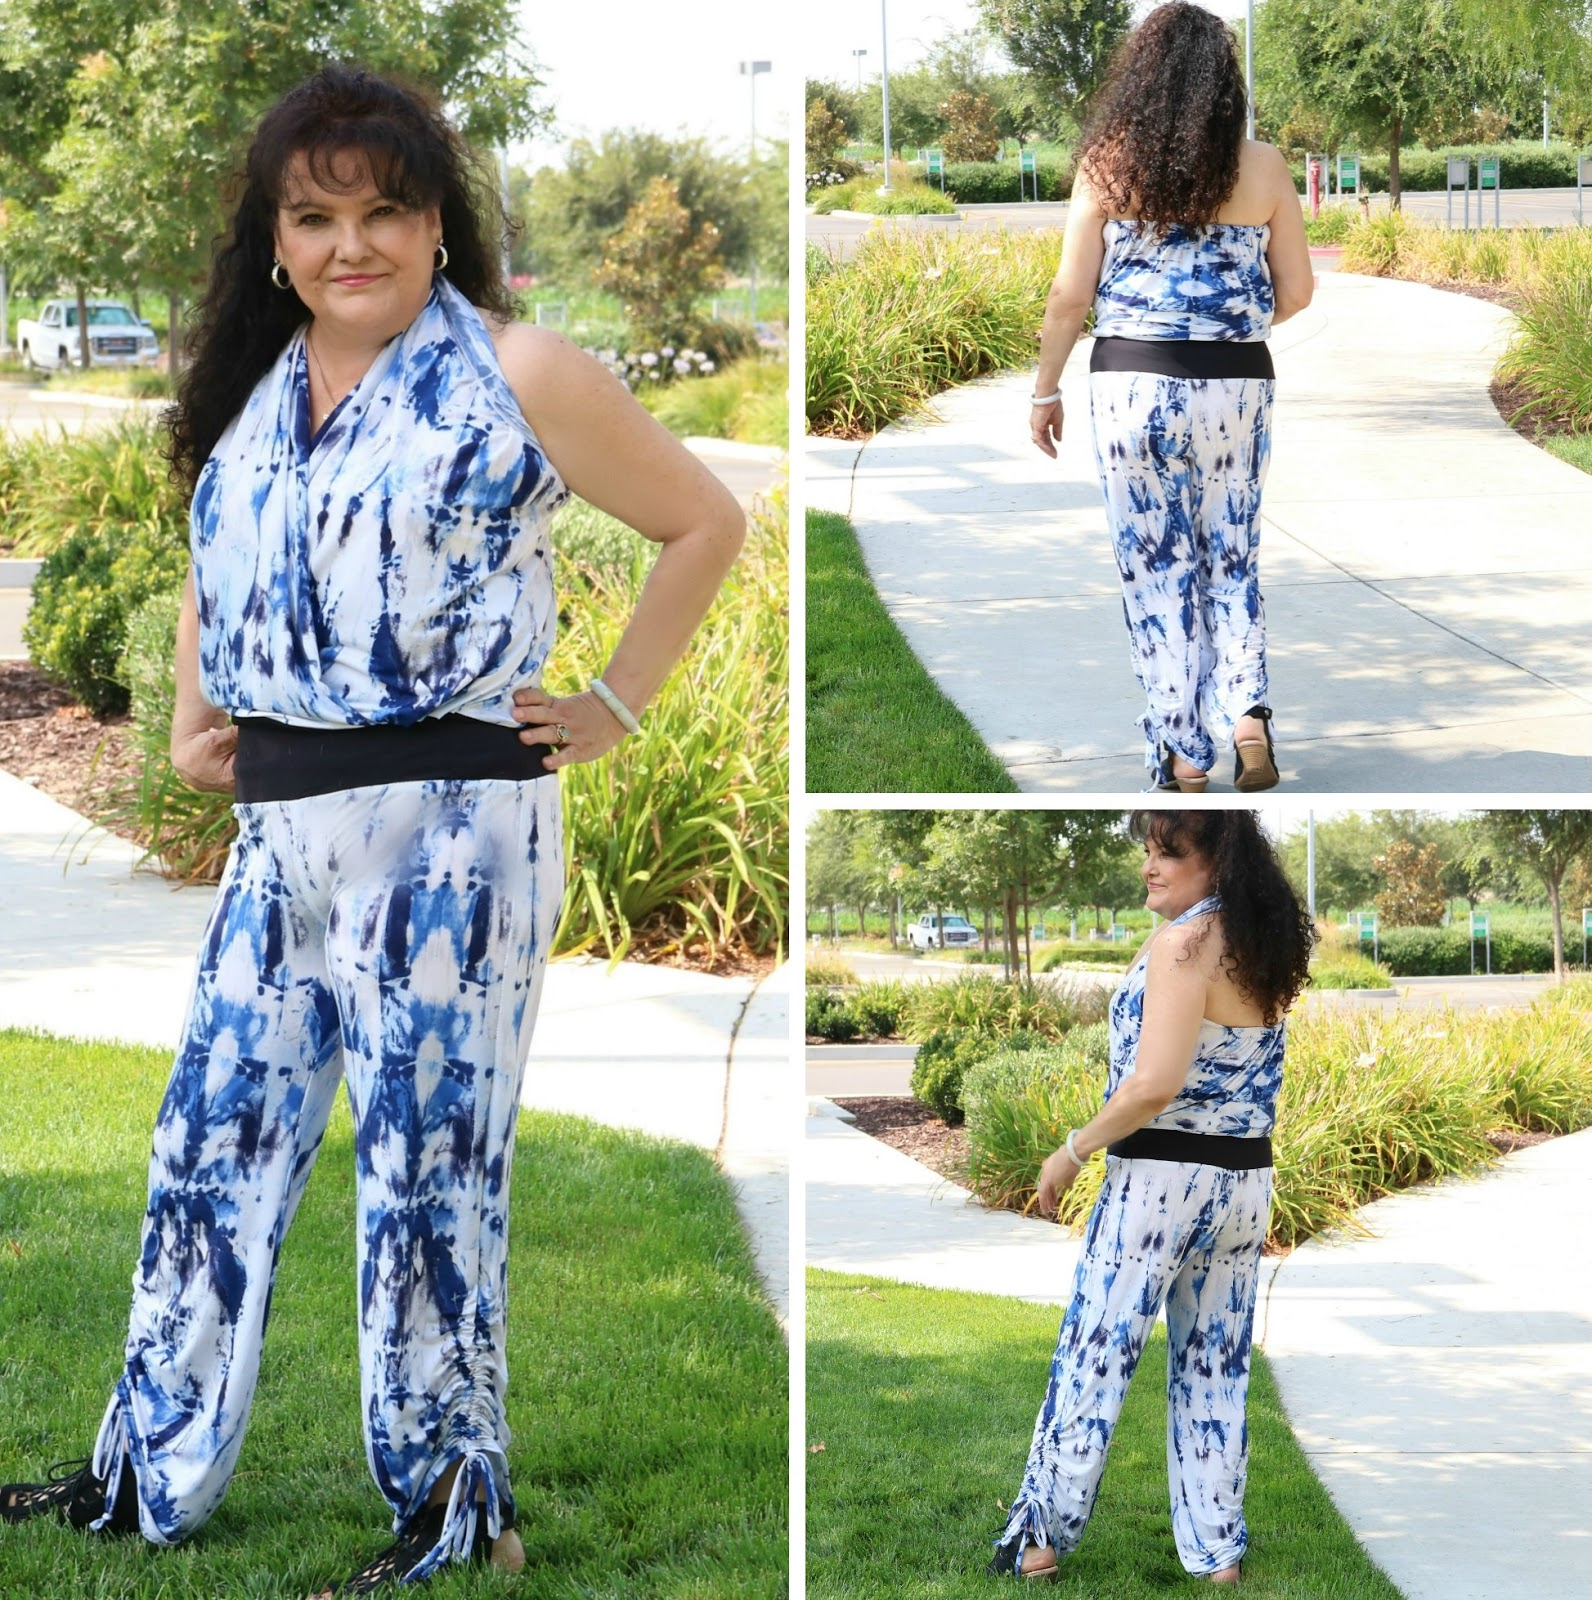 046c6764f0 Overall, I highly recommend this pdf pattern, the Shakti pants from Designer  Stitch. It is not a difficult pattern to sew up. A muslin is highly  recommended ...